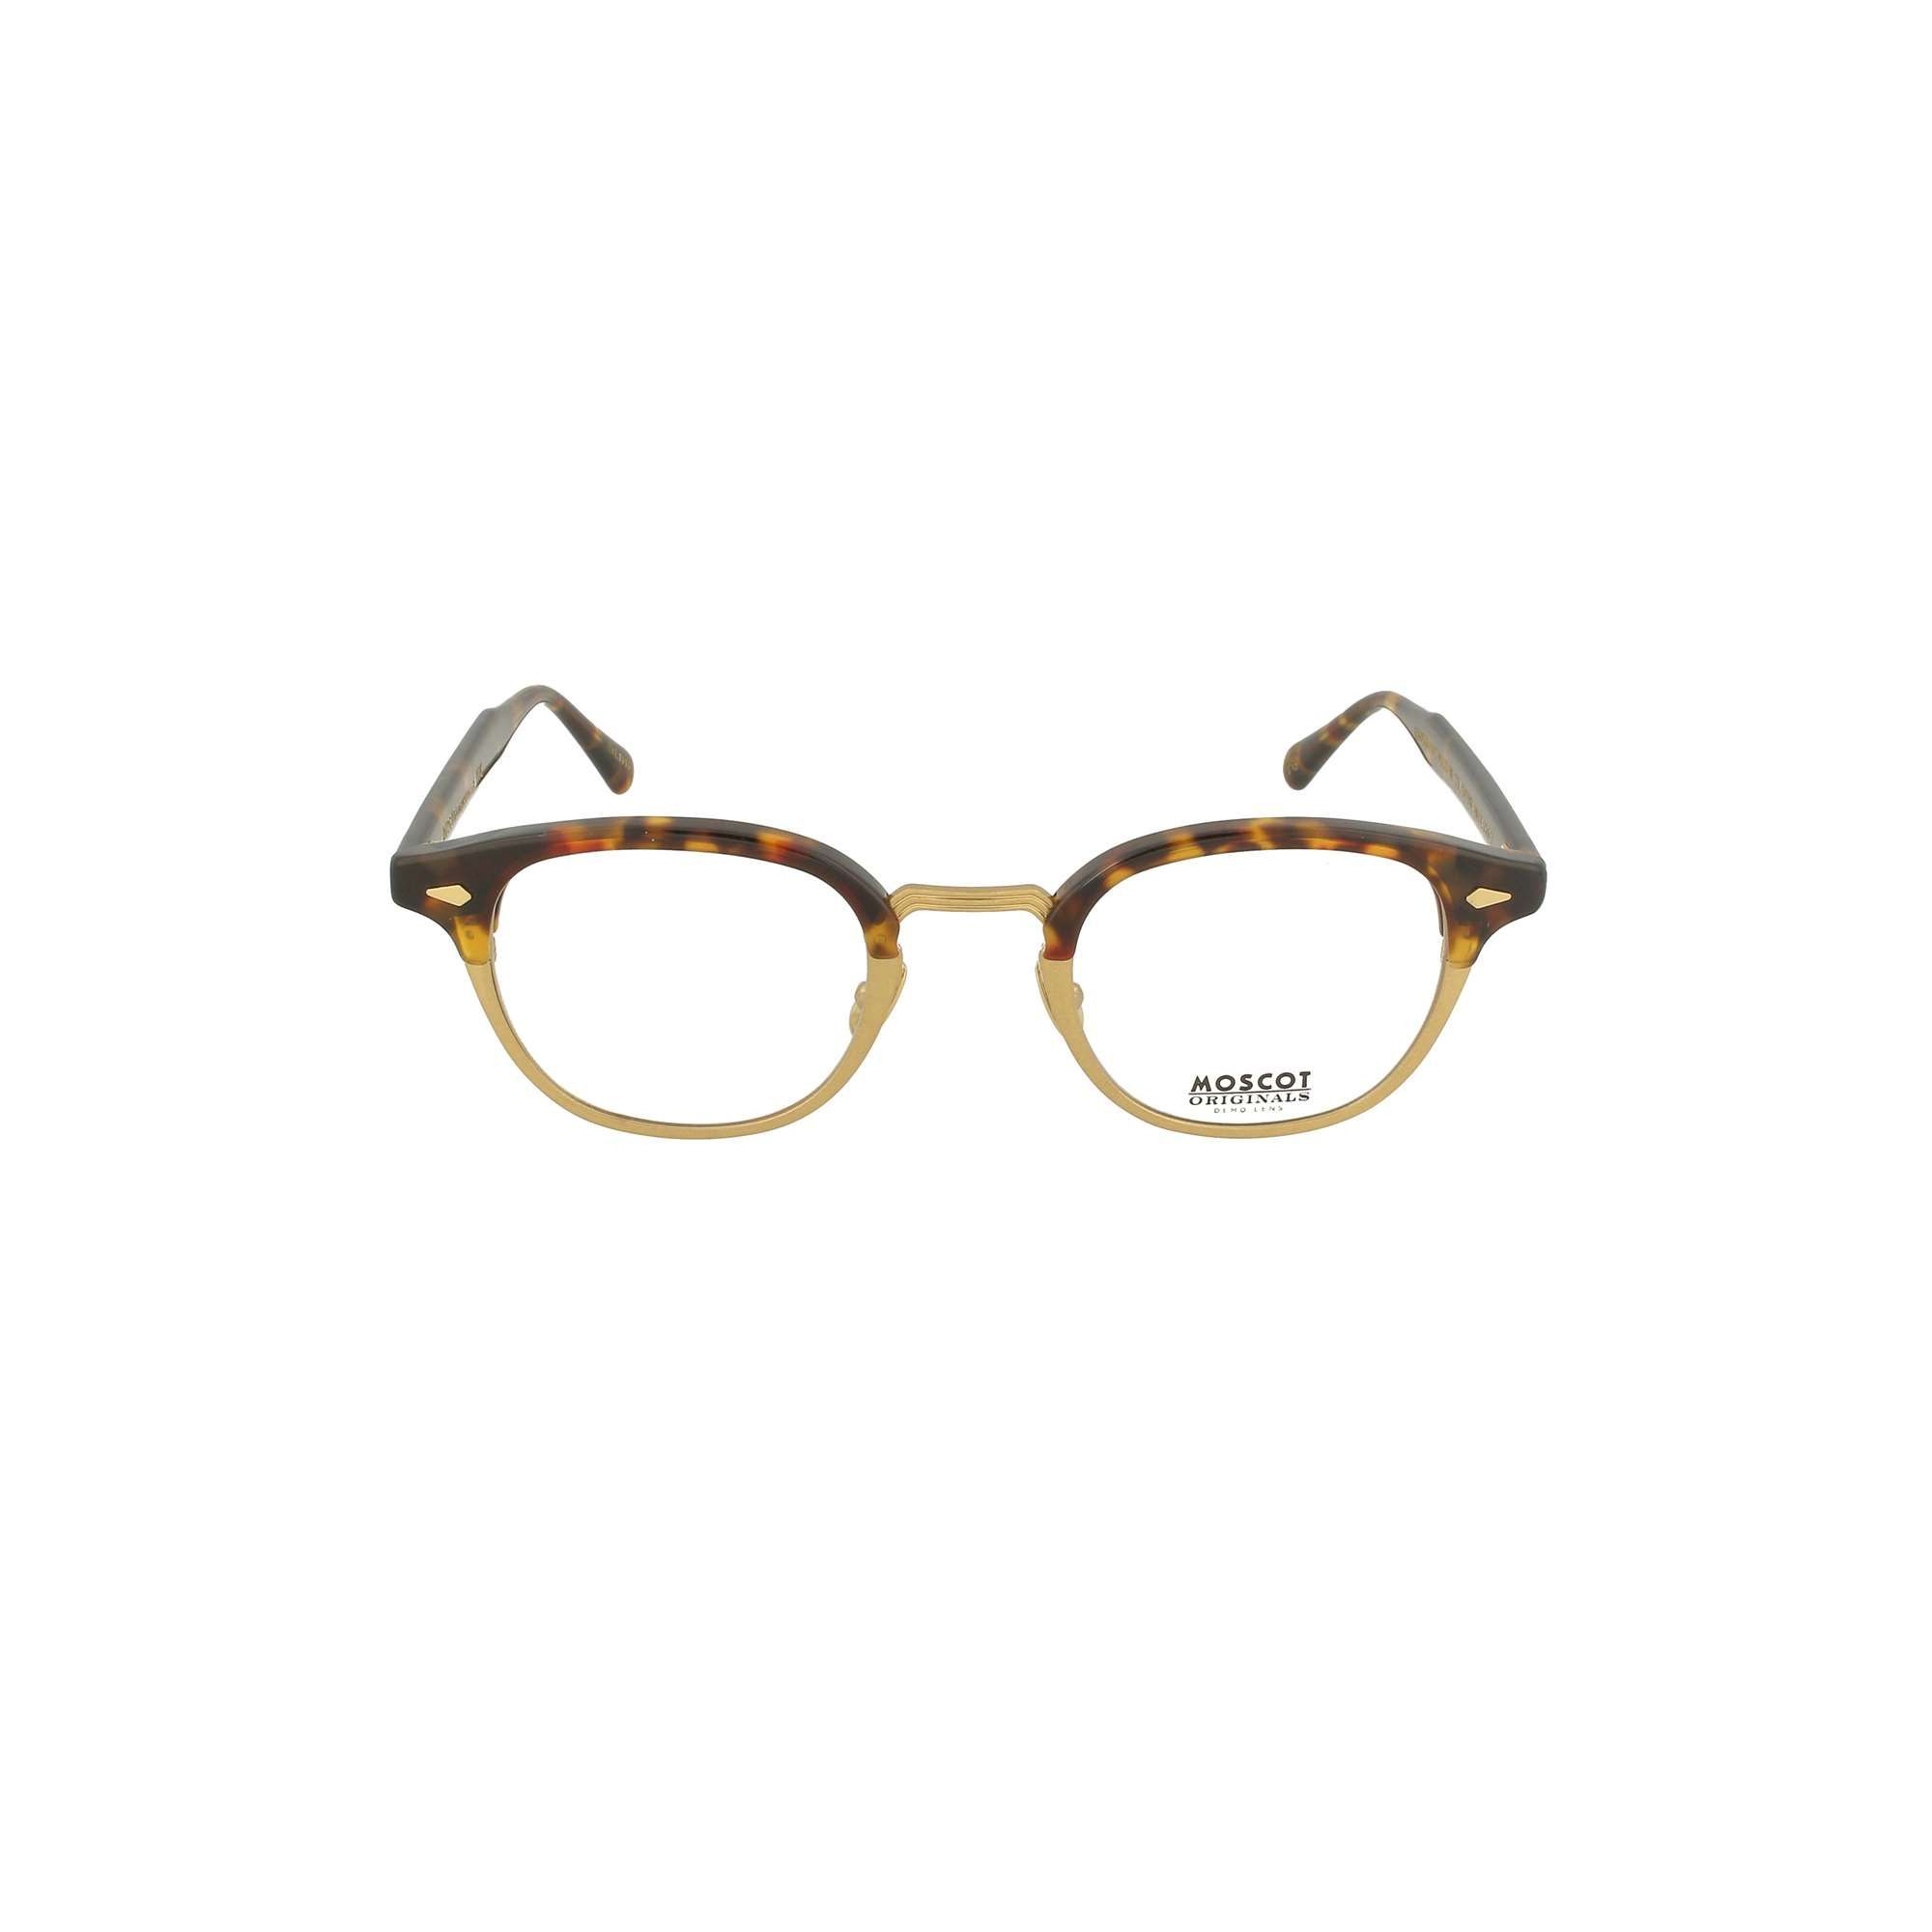 Moscot MOSCOT WOMEN'S BROWN ACETATE GLASSES